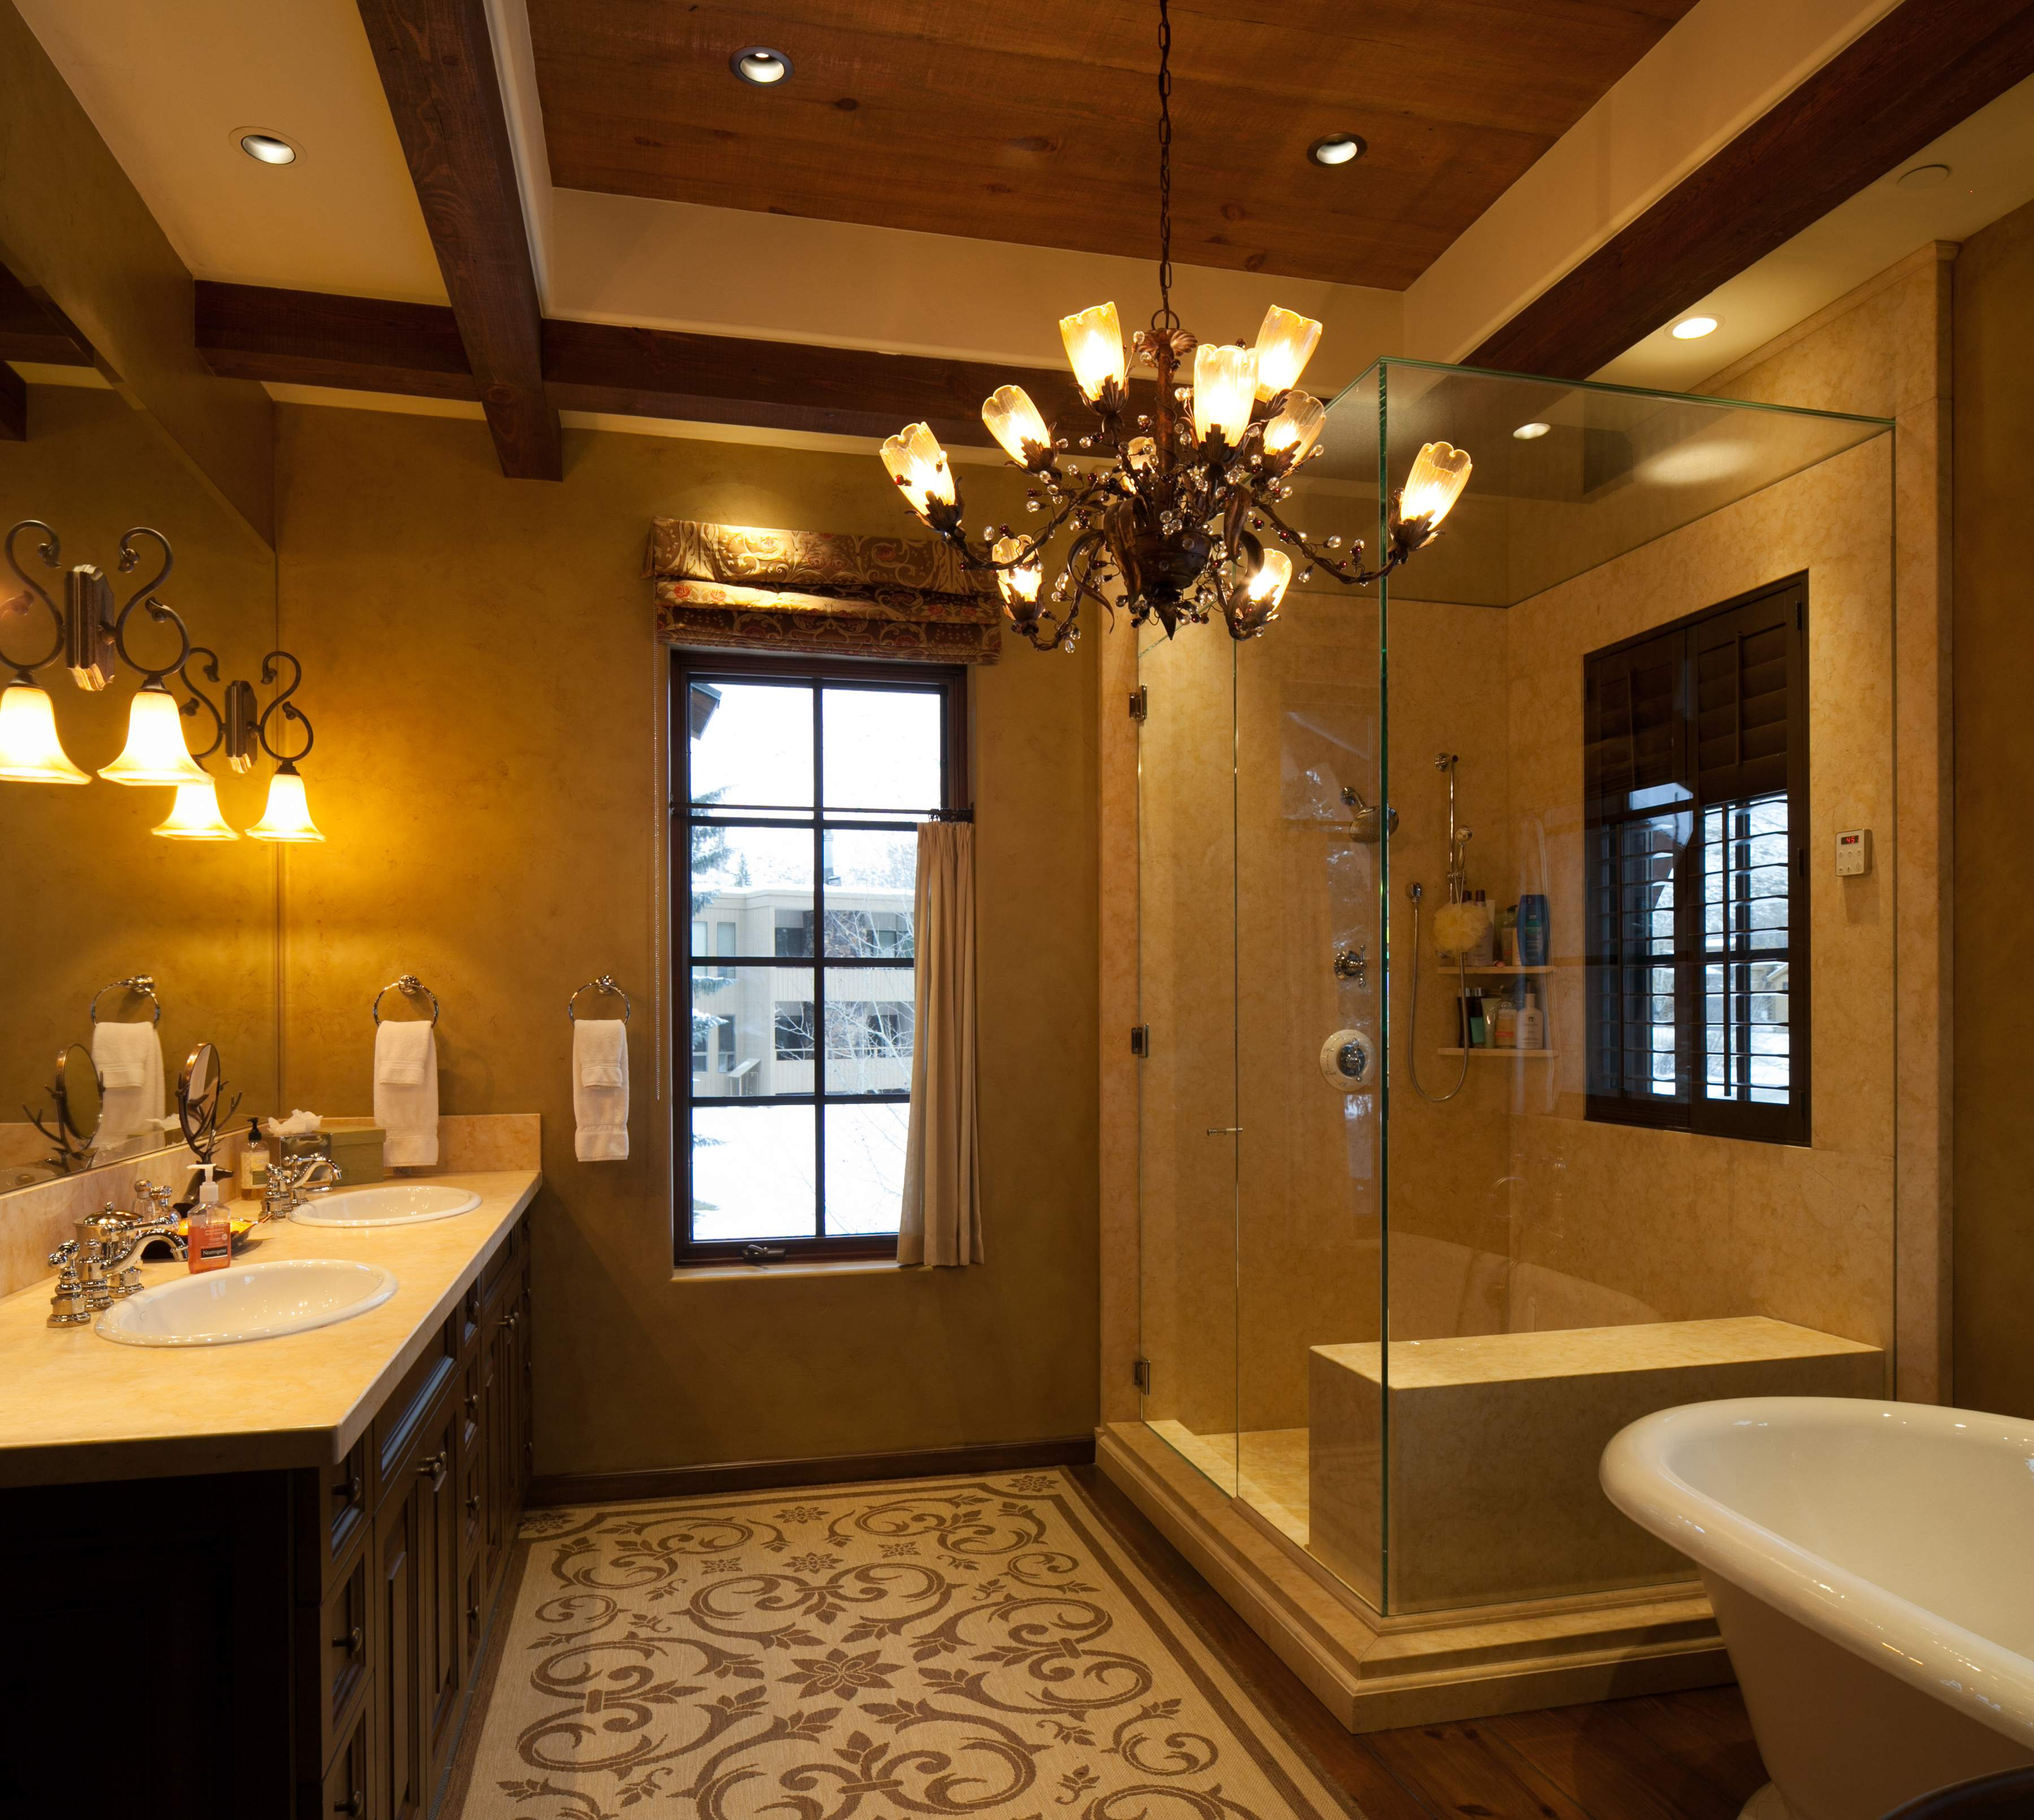 Additional photo for property listing at Luxurious Ski Retreat 119 Ritchie Dr. Ketchum, Idaho 83340 États-Unis